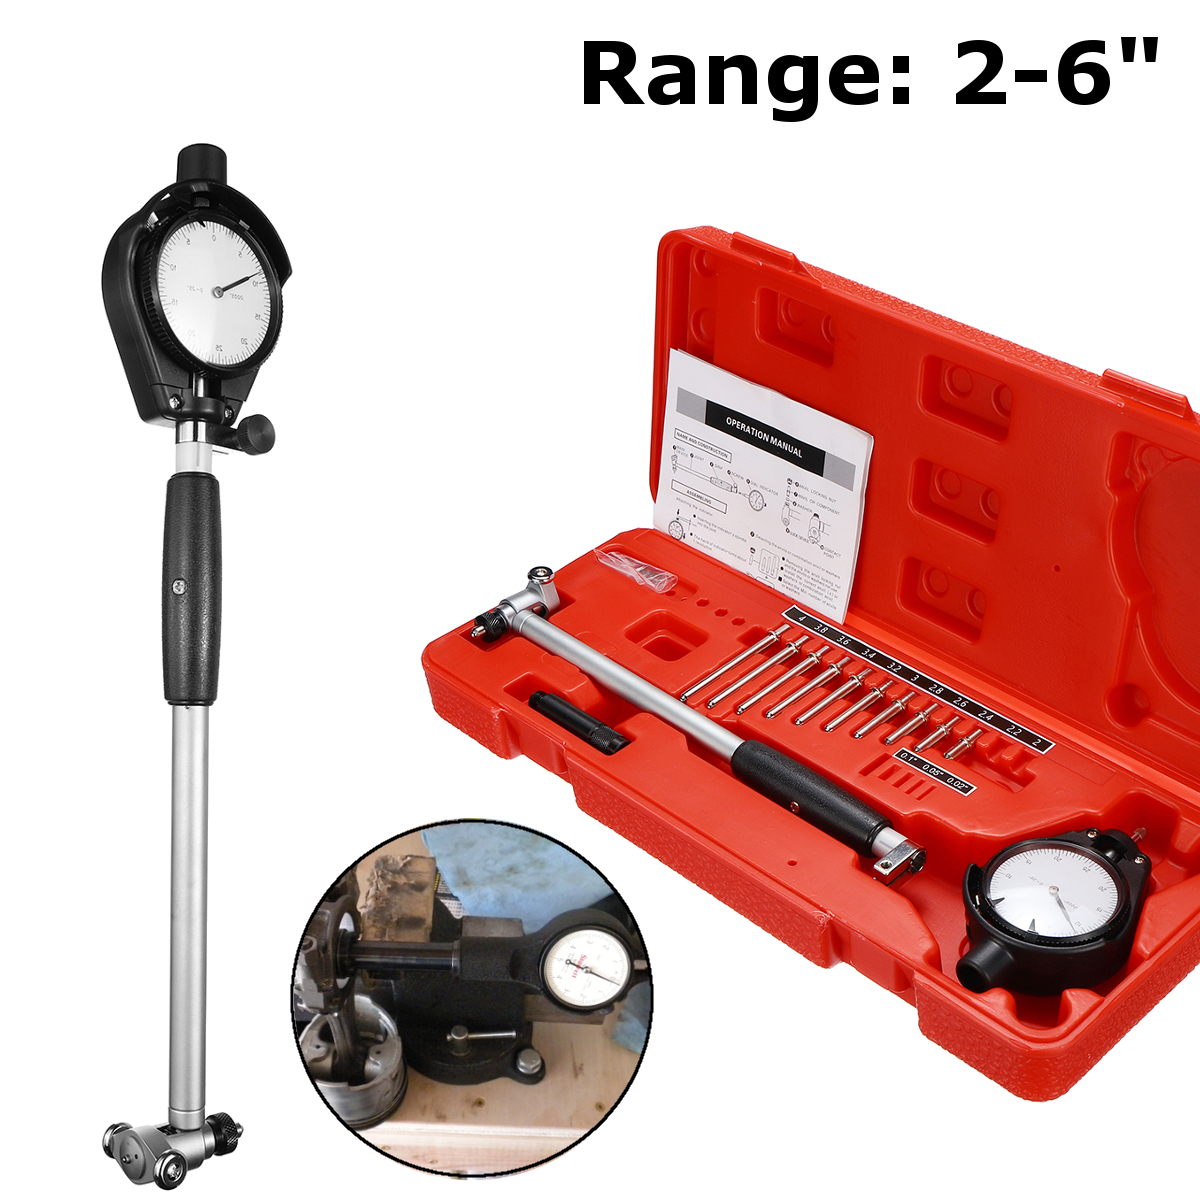 цена на 2-6 Grad 0.0005 Steel+ABS 10 Anvils Dial Bore Gauge Measuring Indicator Resolution Engine CylinderChangeable/Movable Probe